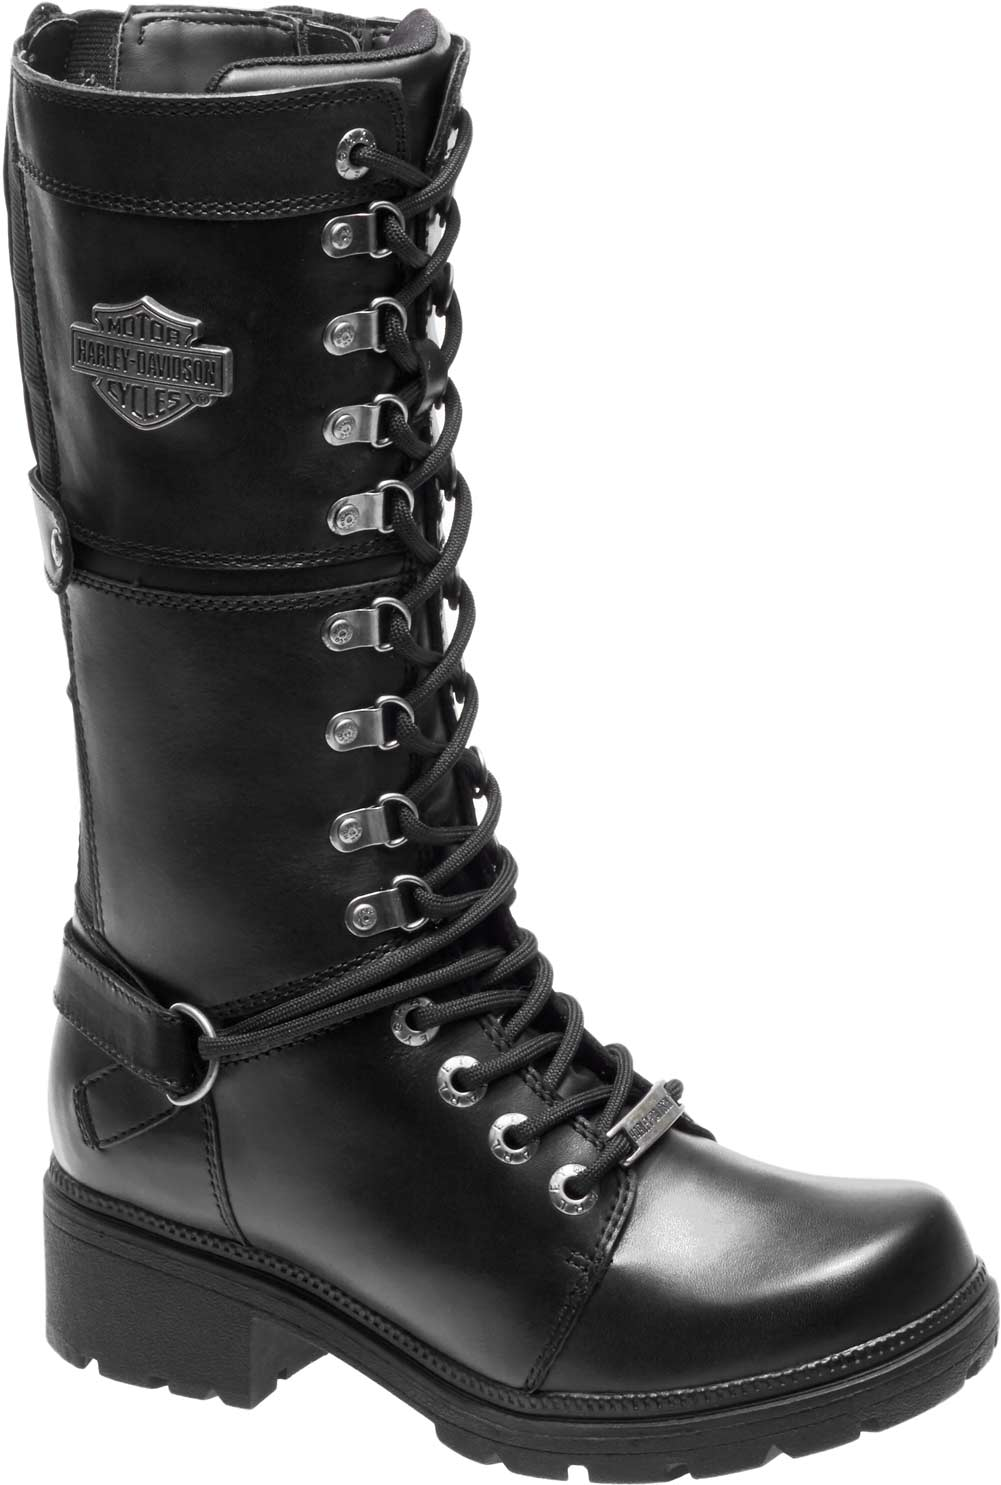 89853e8bfbe Details about Harley-Davidson Women's Harland 11-Inch Black Mid-Calf  Motorcycle Boots D83987